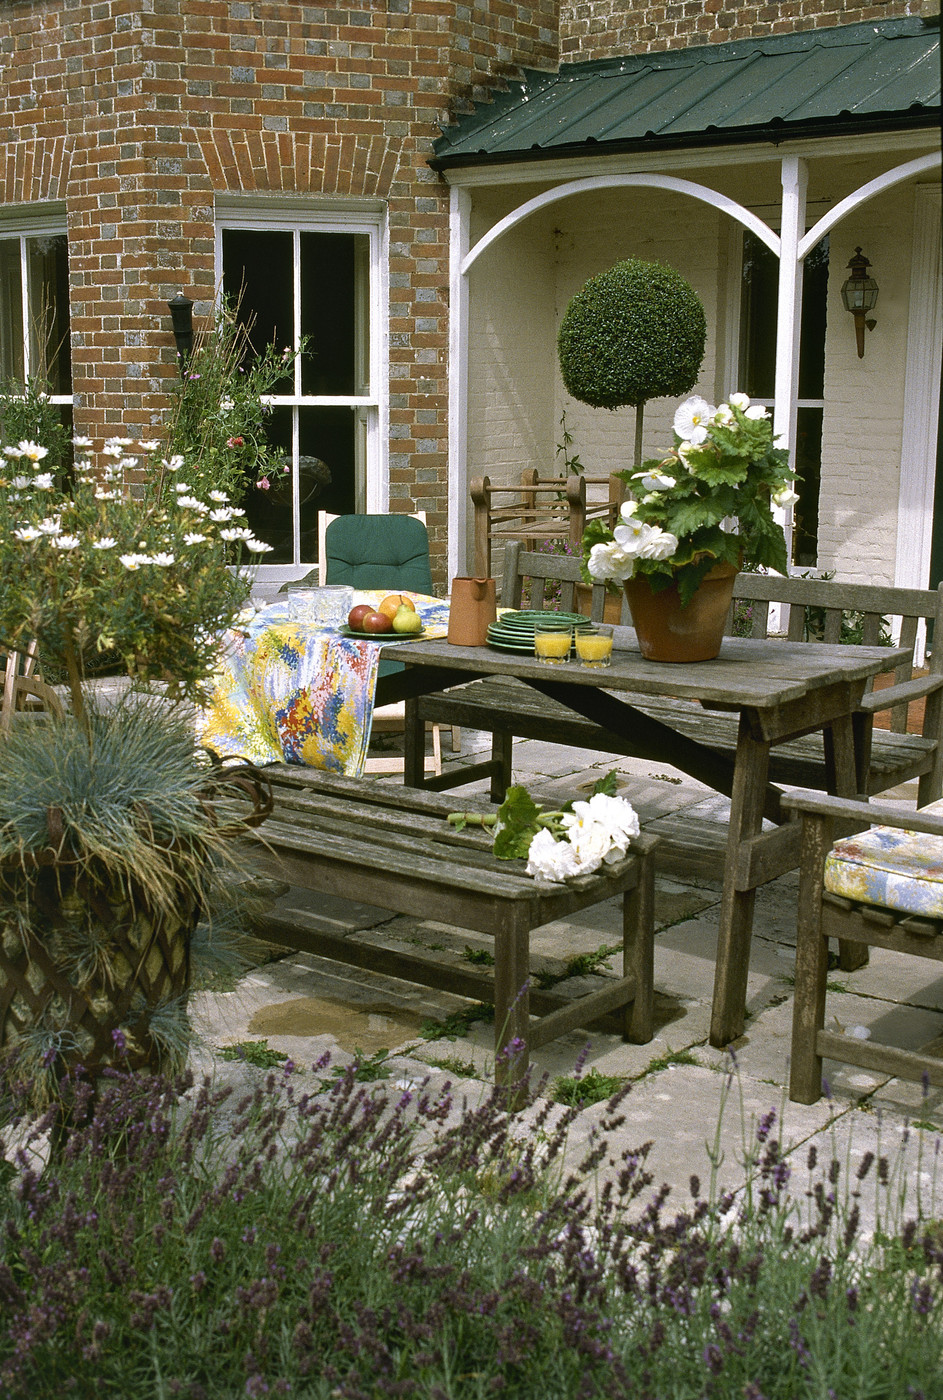 Country patio outdoor patio design ideas lonny for Backyard patio design ideas